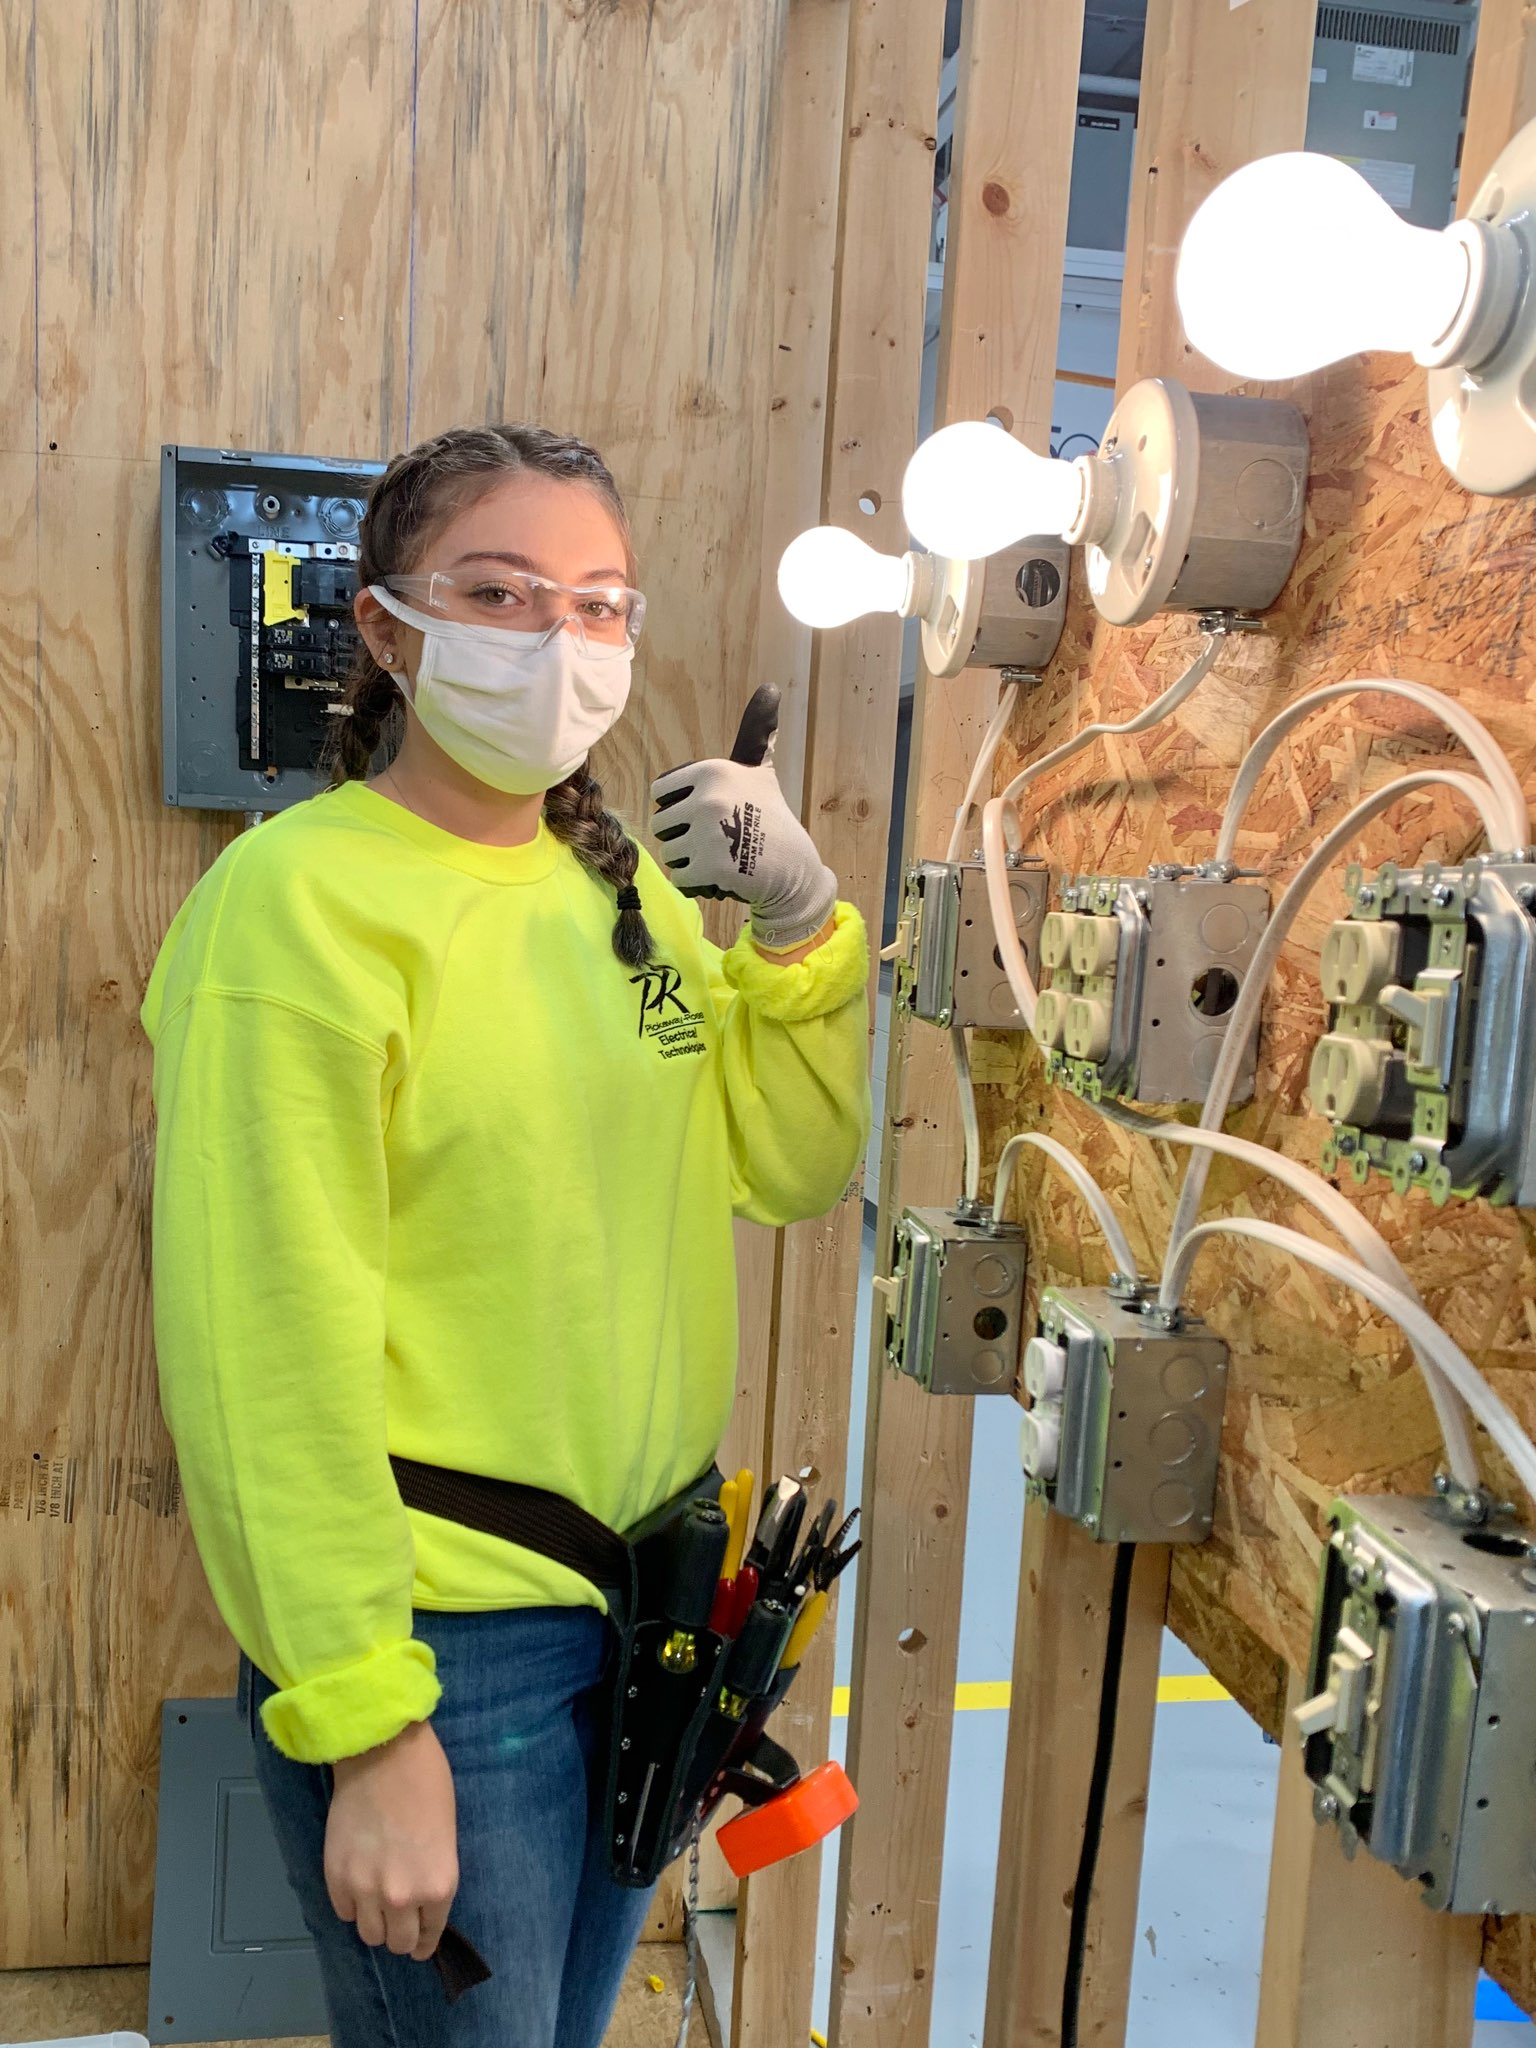 A girl in a yellow shirt and jeans stands with a thumbs up next to a light bulb and wiring.